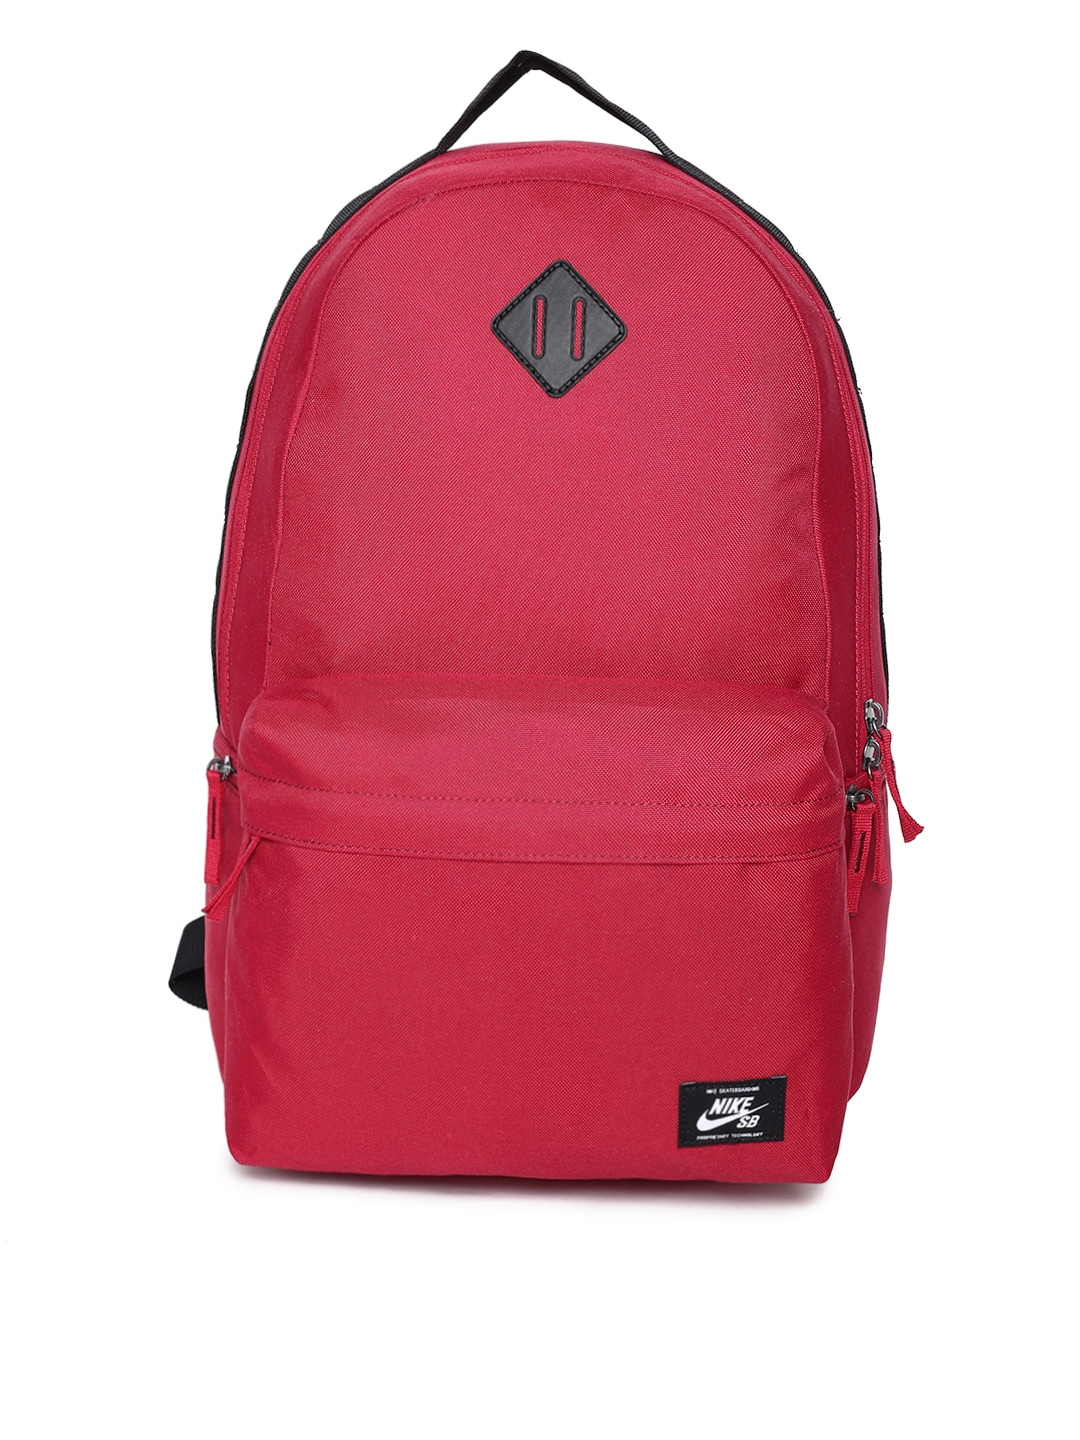 Nike Men Red SB ICON Backpack 63c7b5adff0d7